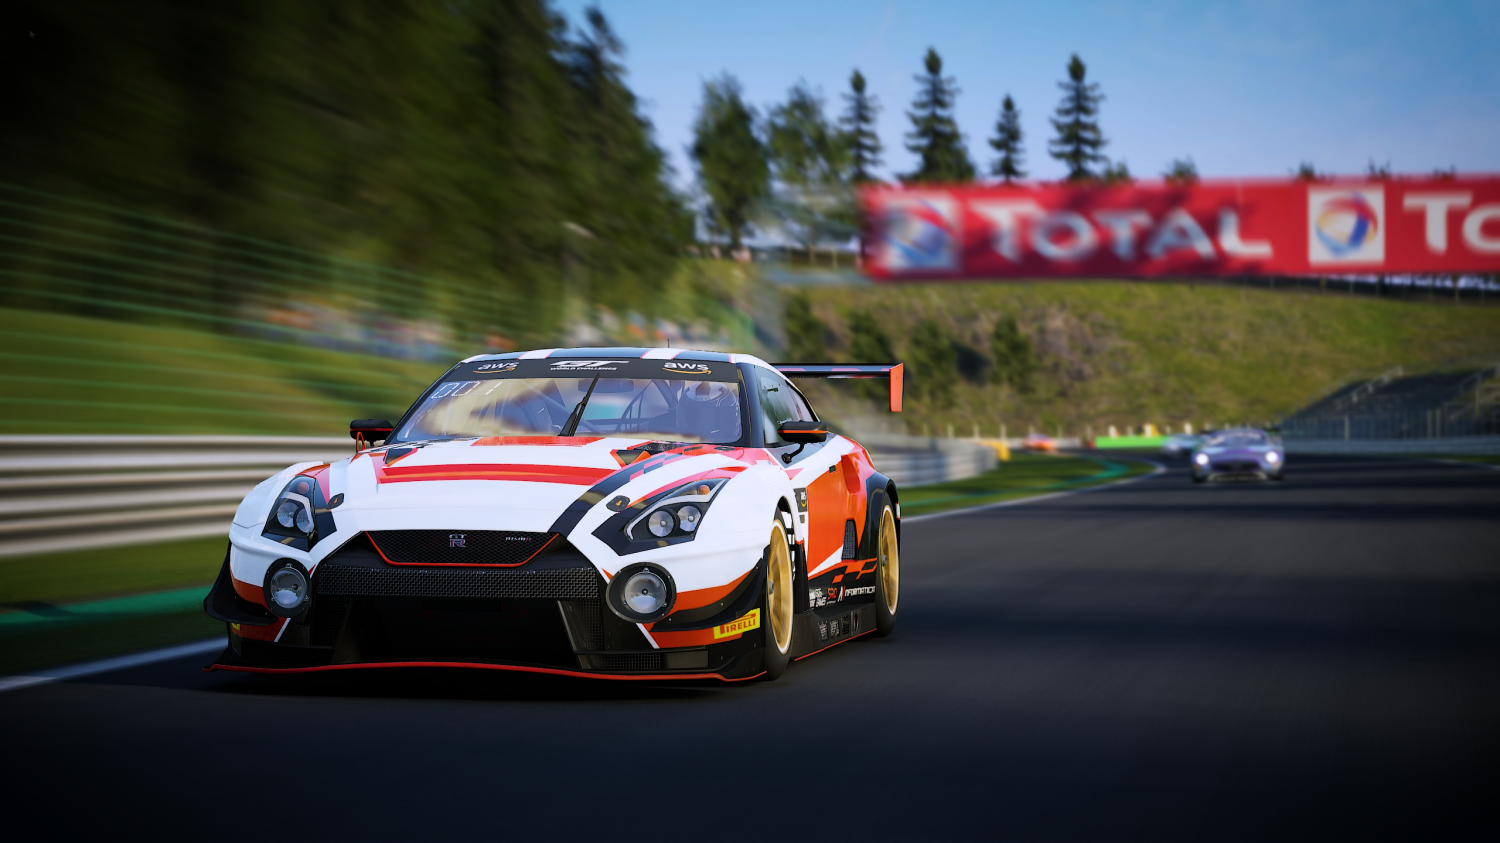 Hat Trick for Heitkotter in GT Rivals Round 4 at Spa Francorchamps